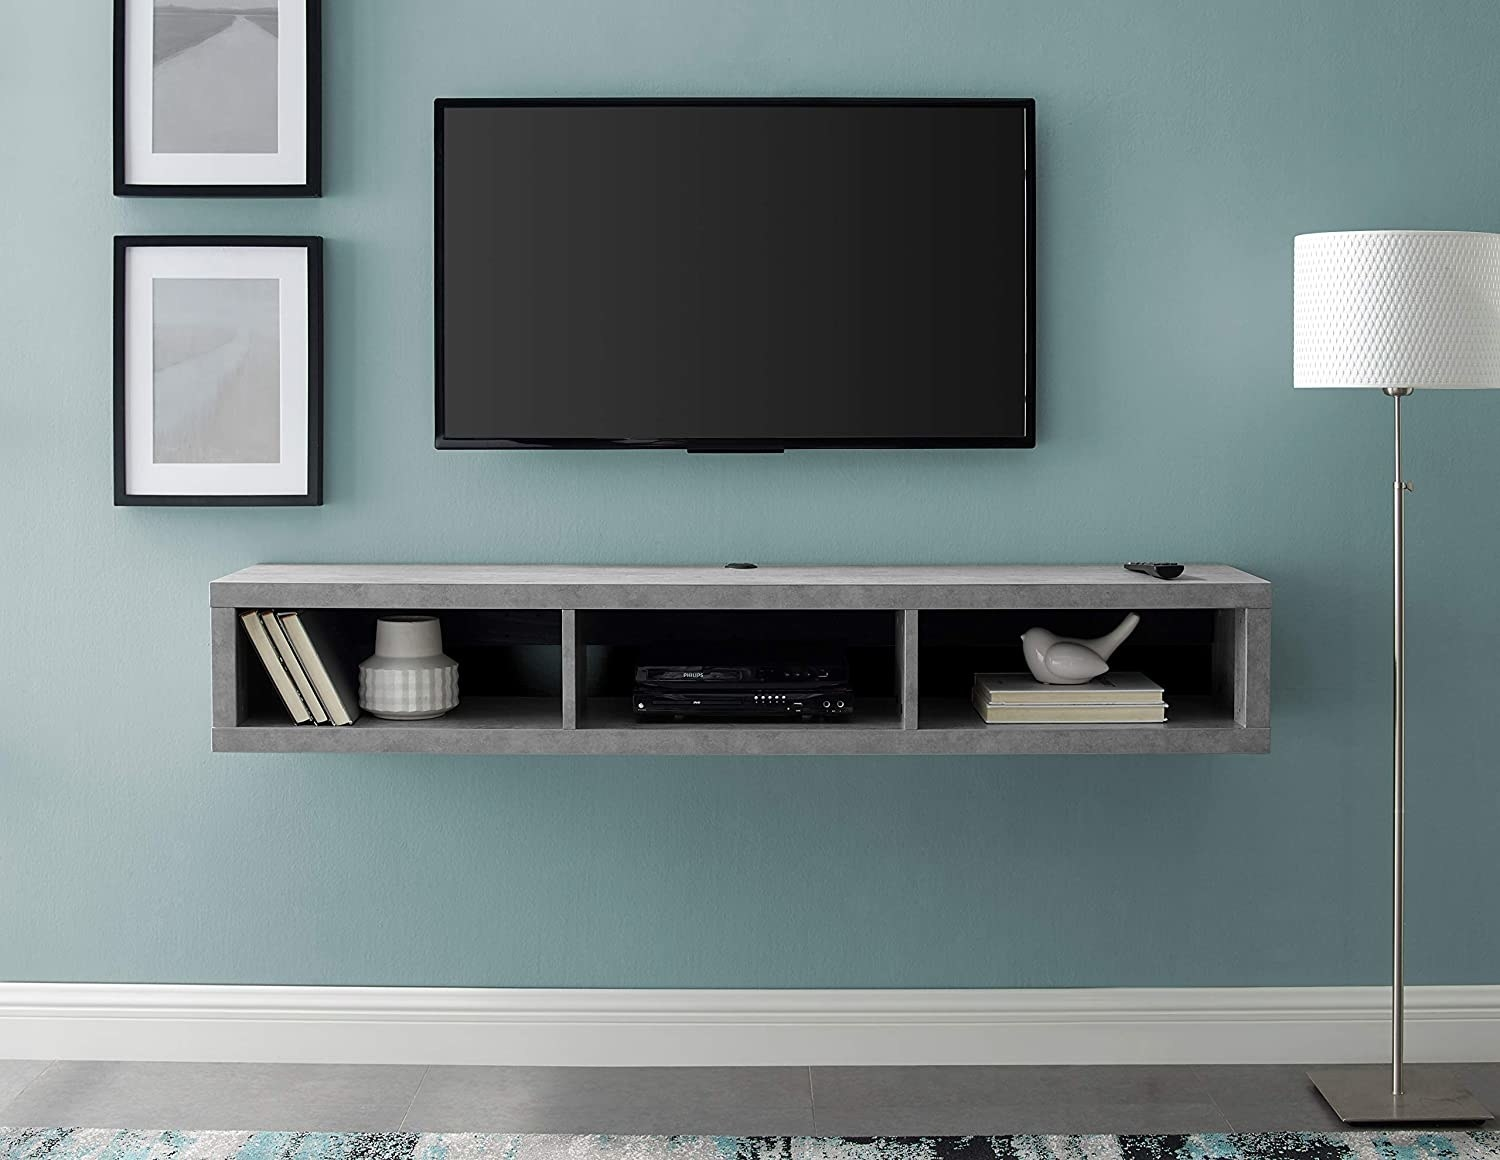 Gray floating TV console under TV mounted on wall